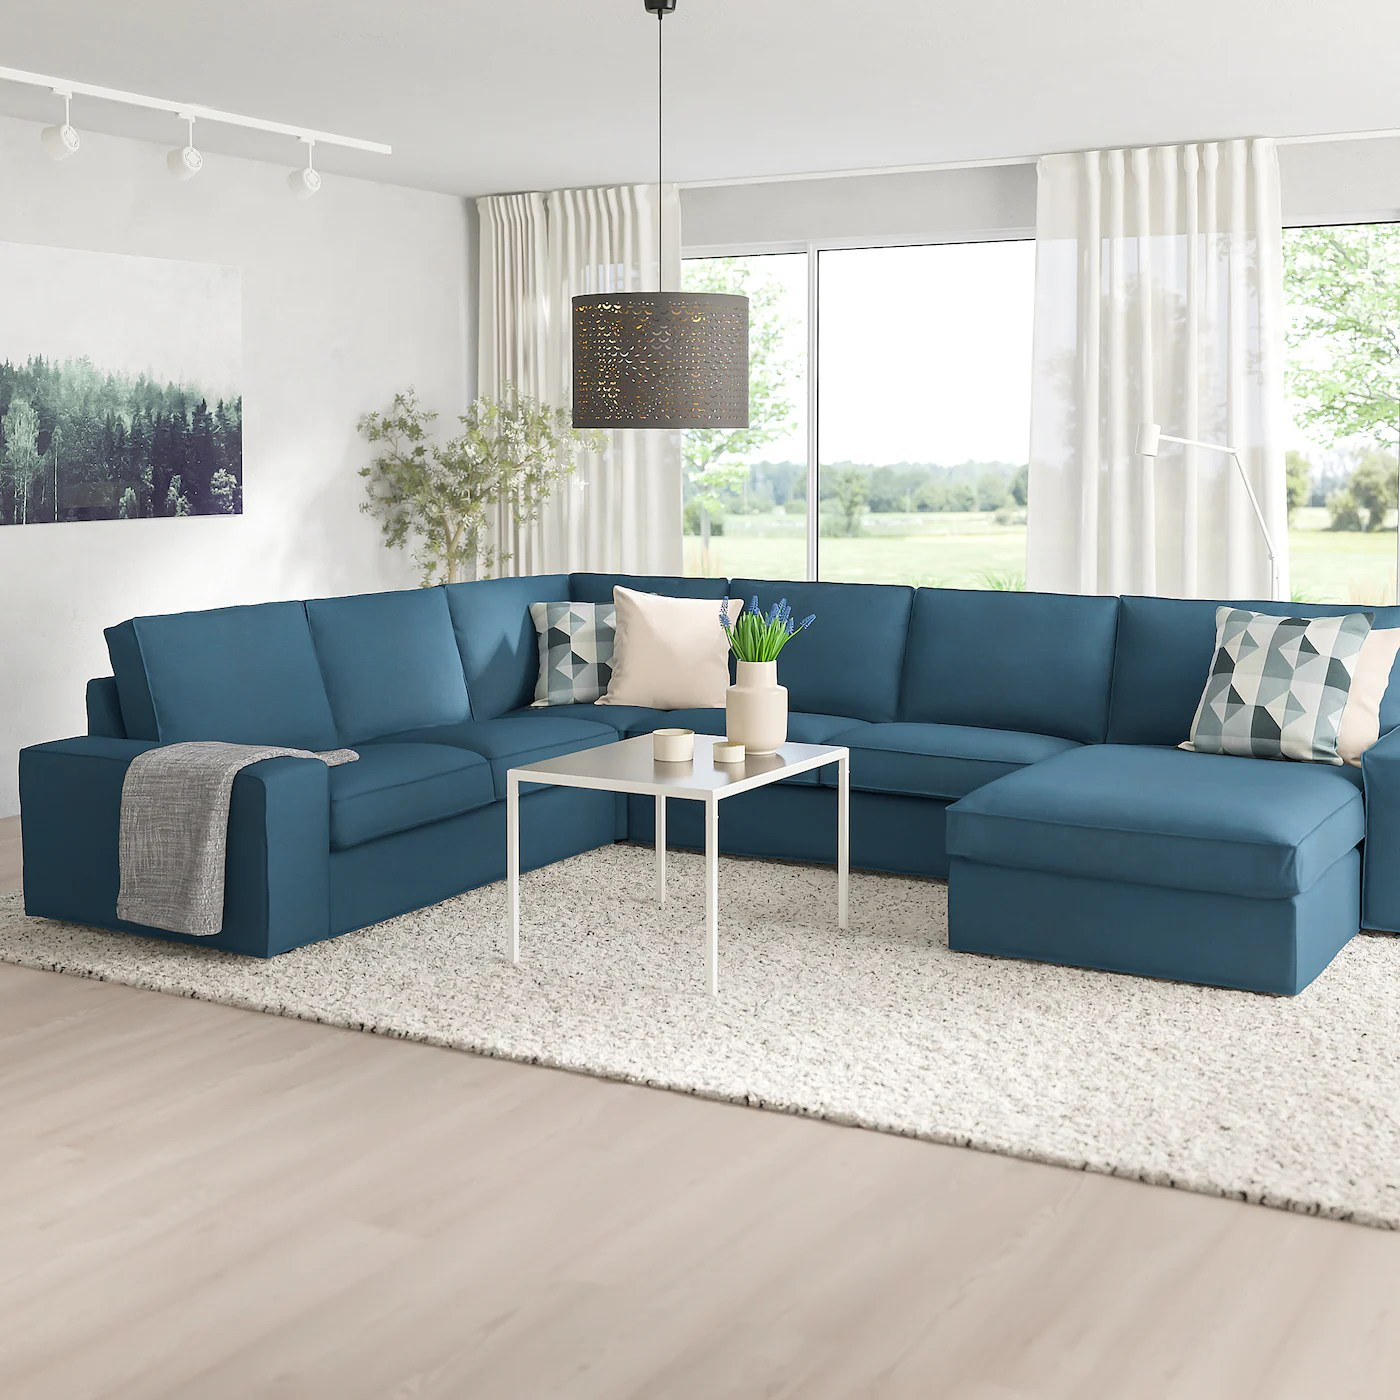 Slipcovers for ikea's färlöv armchair start at $149. KIVIK Sectional, 5-seat corner - Hillared with chaise ...